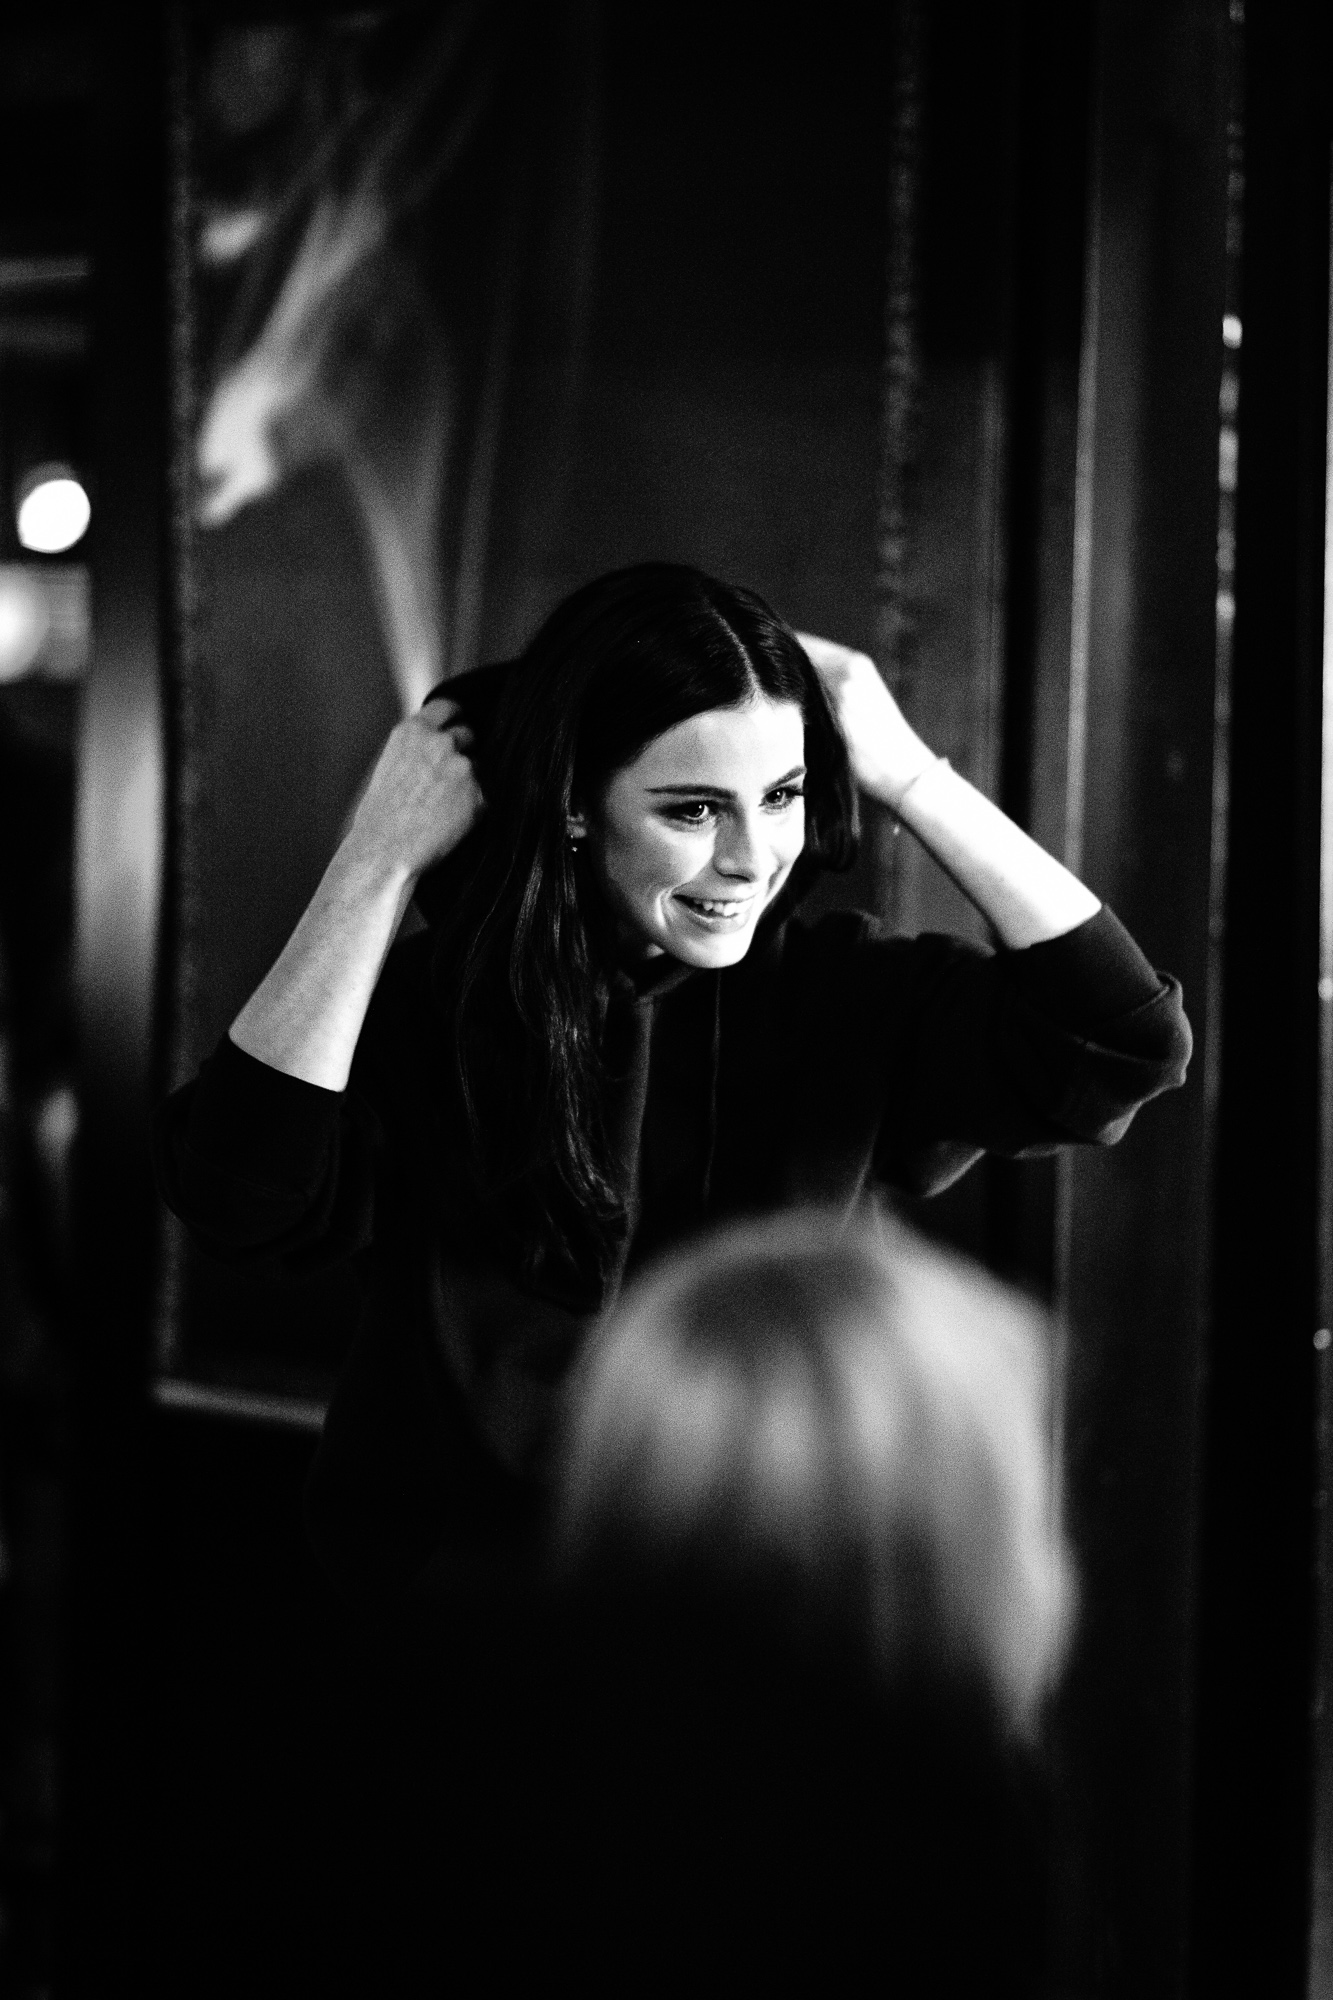 lena-meyer-landrut-by-jacob-woyton